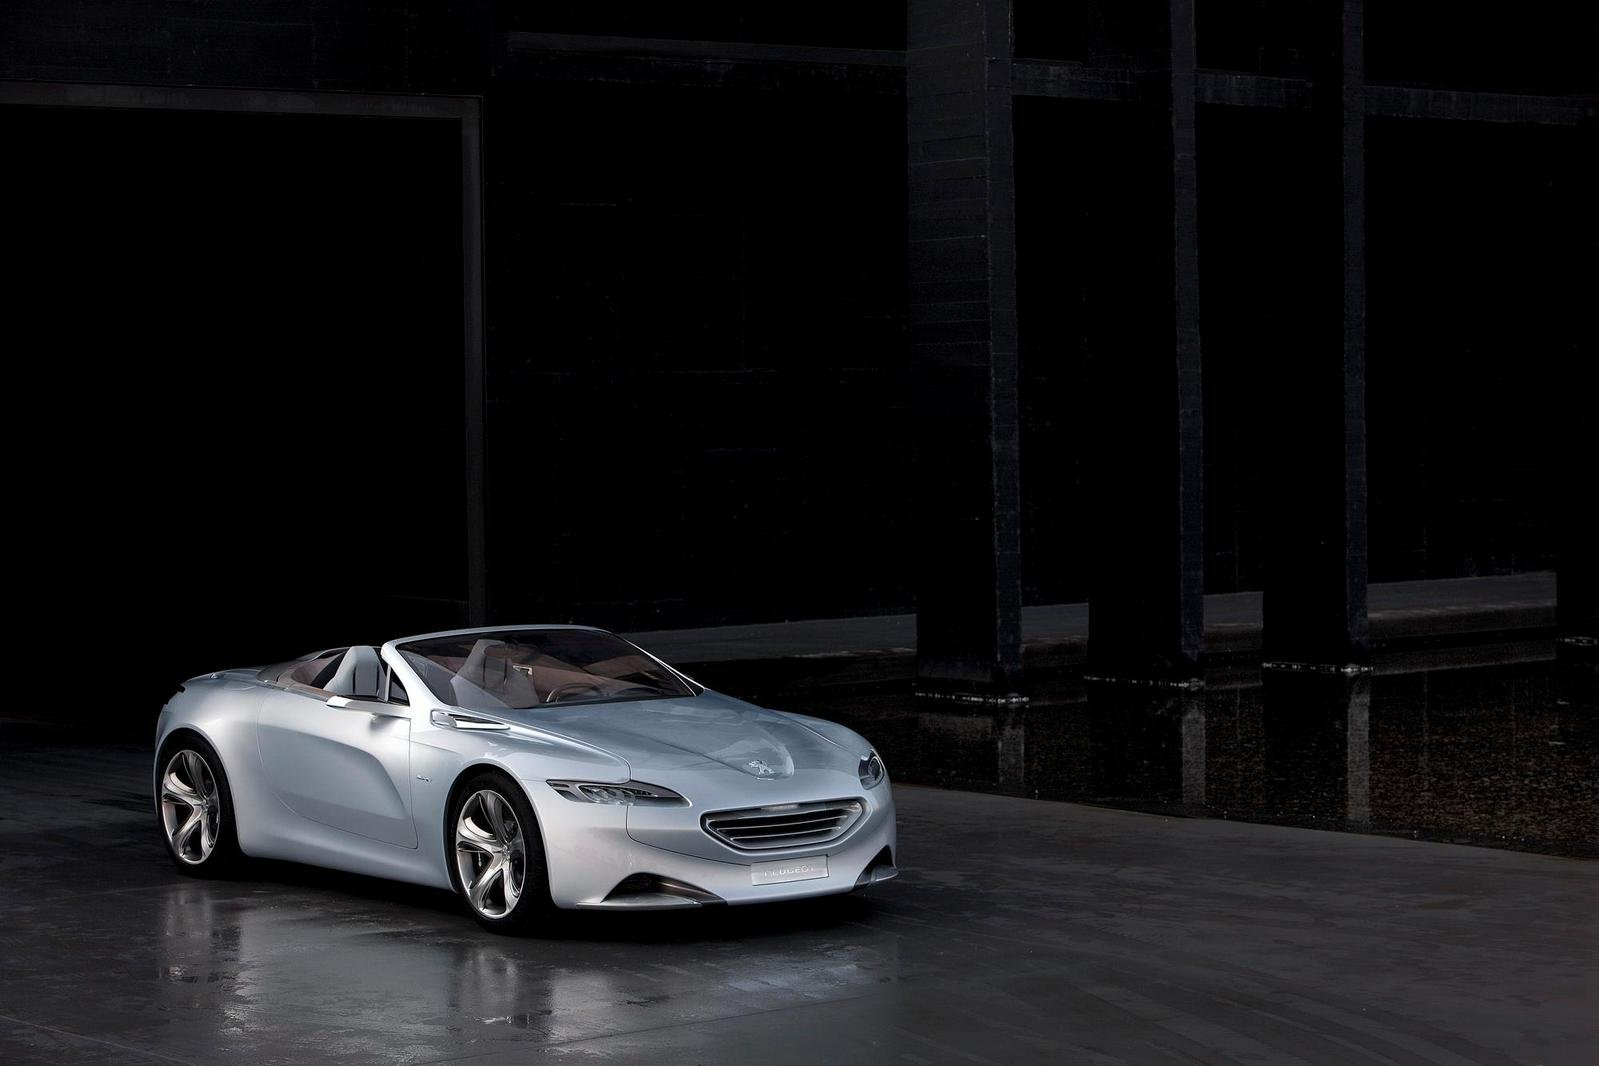 http://pictures.topspeed.com/IMG/crop/201001/2010-peugeot-sr1-concept_1600x0w.jpg